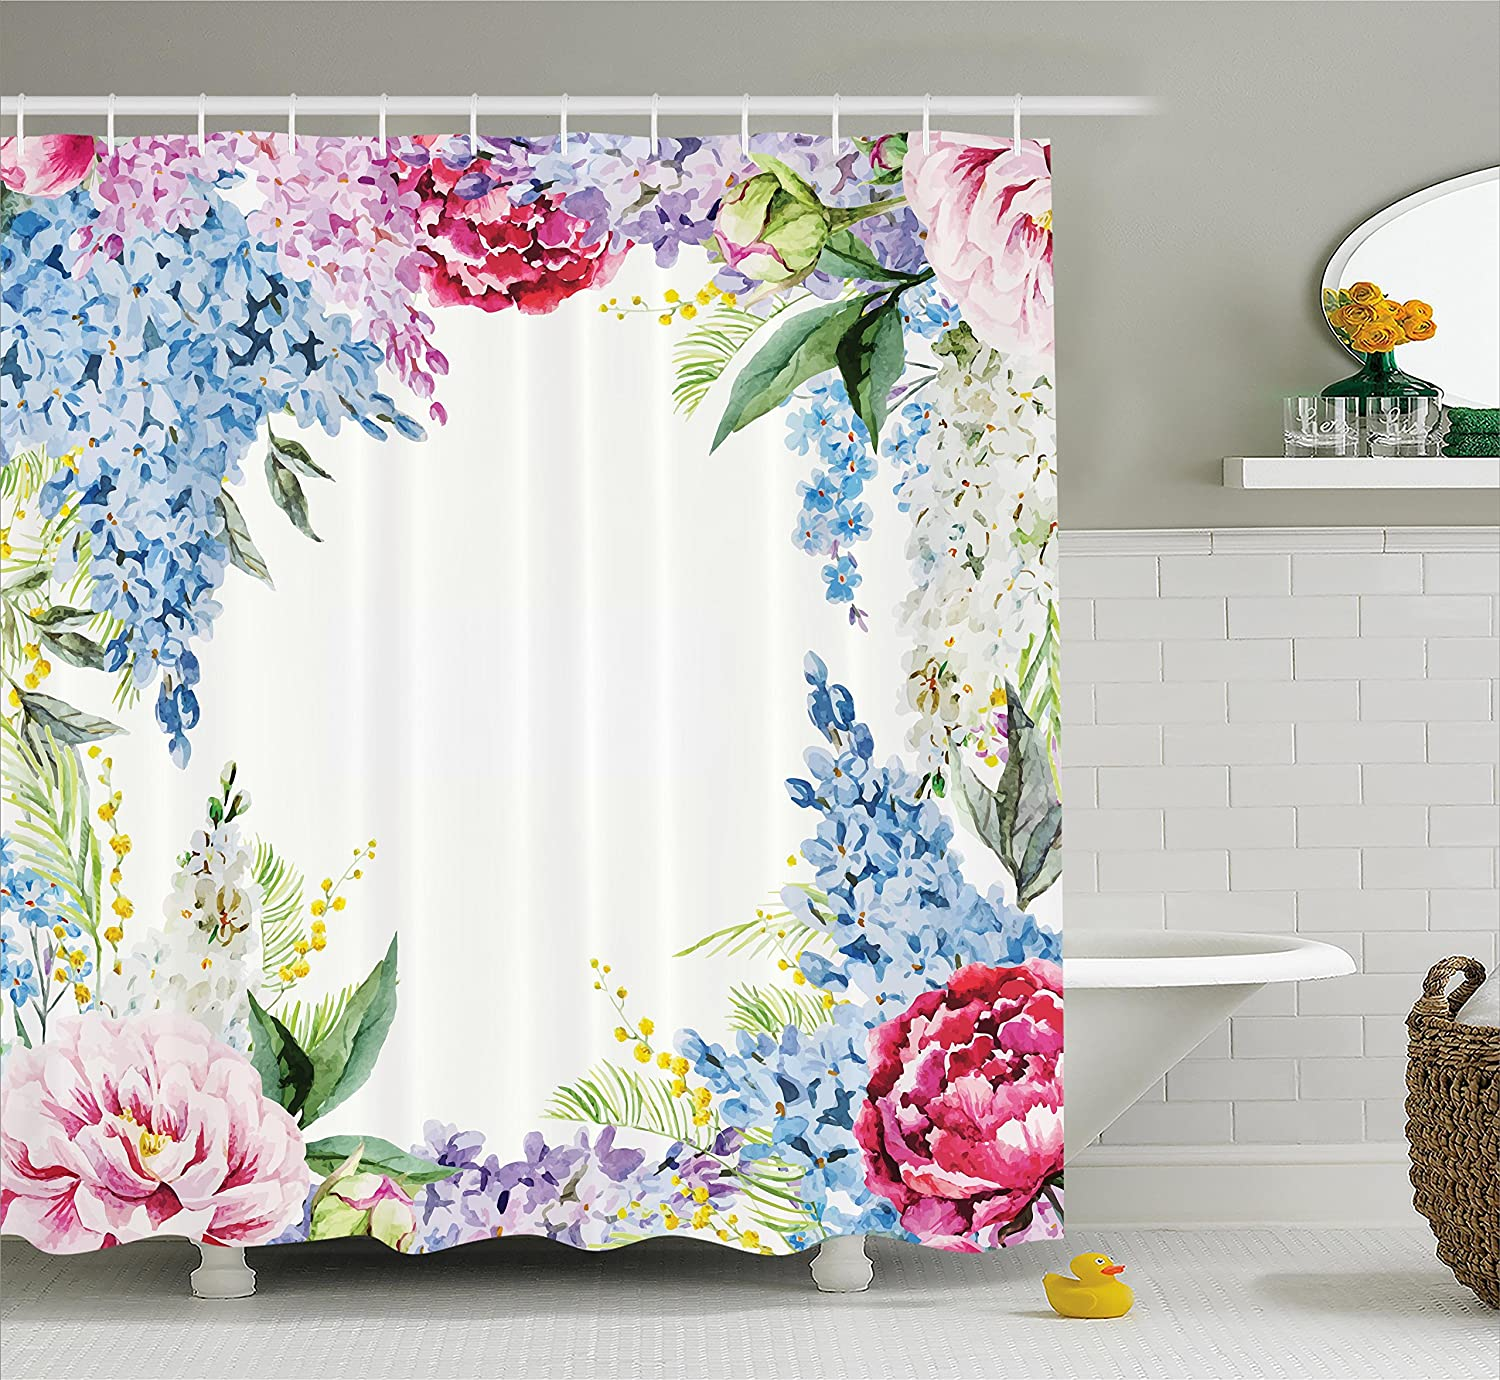 84 Inches Extra Long Fabric Bathroom Decor Set with Hooks Ambesonne Floral Shower Curtain Flower Orchids Bohemian Style Vintage Petals Vines Pattern French Country Style White Blue